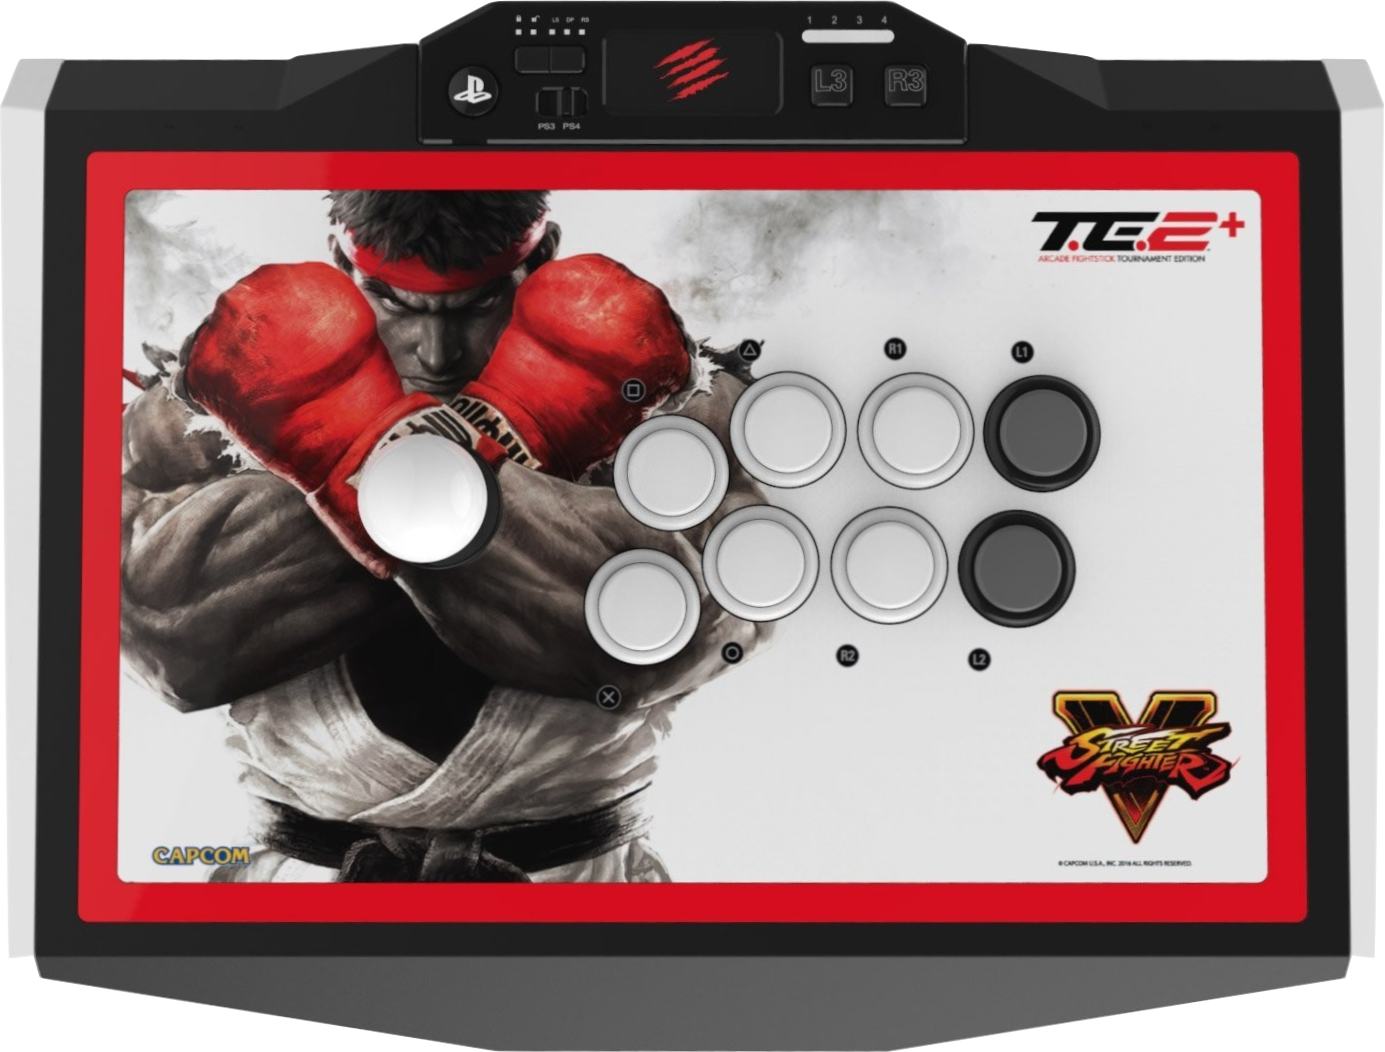 Read more about the article Mad Catz Street Fighter V TE2+ Review